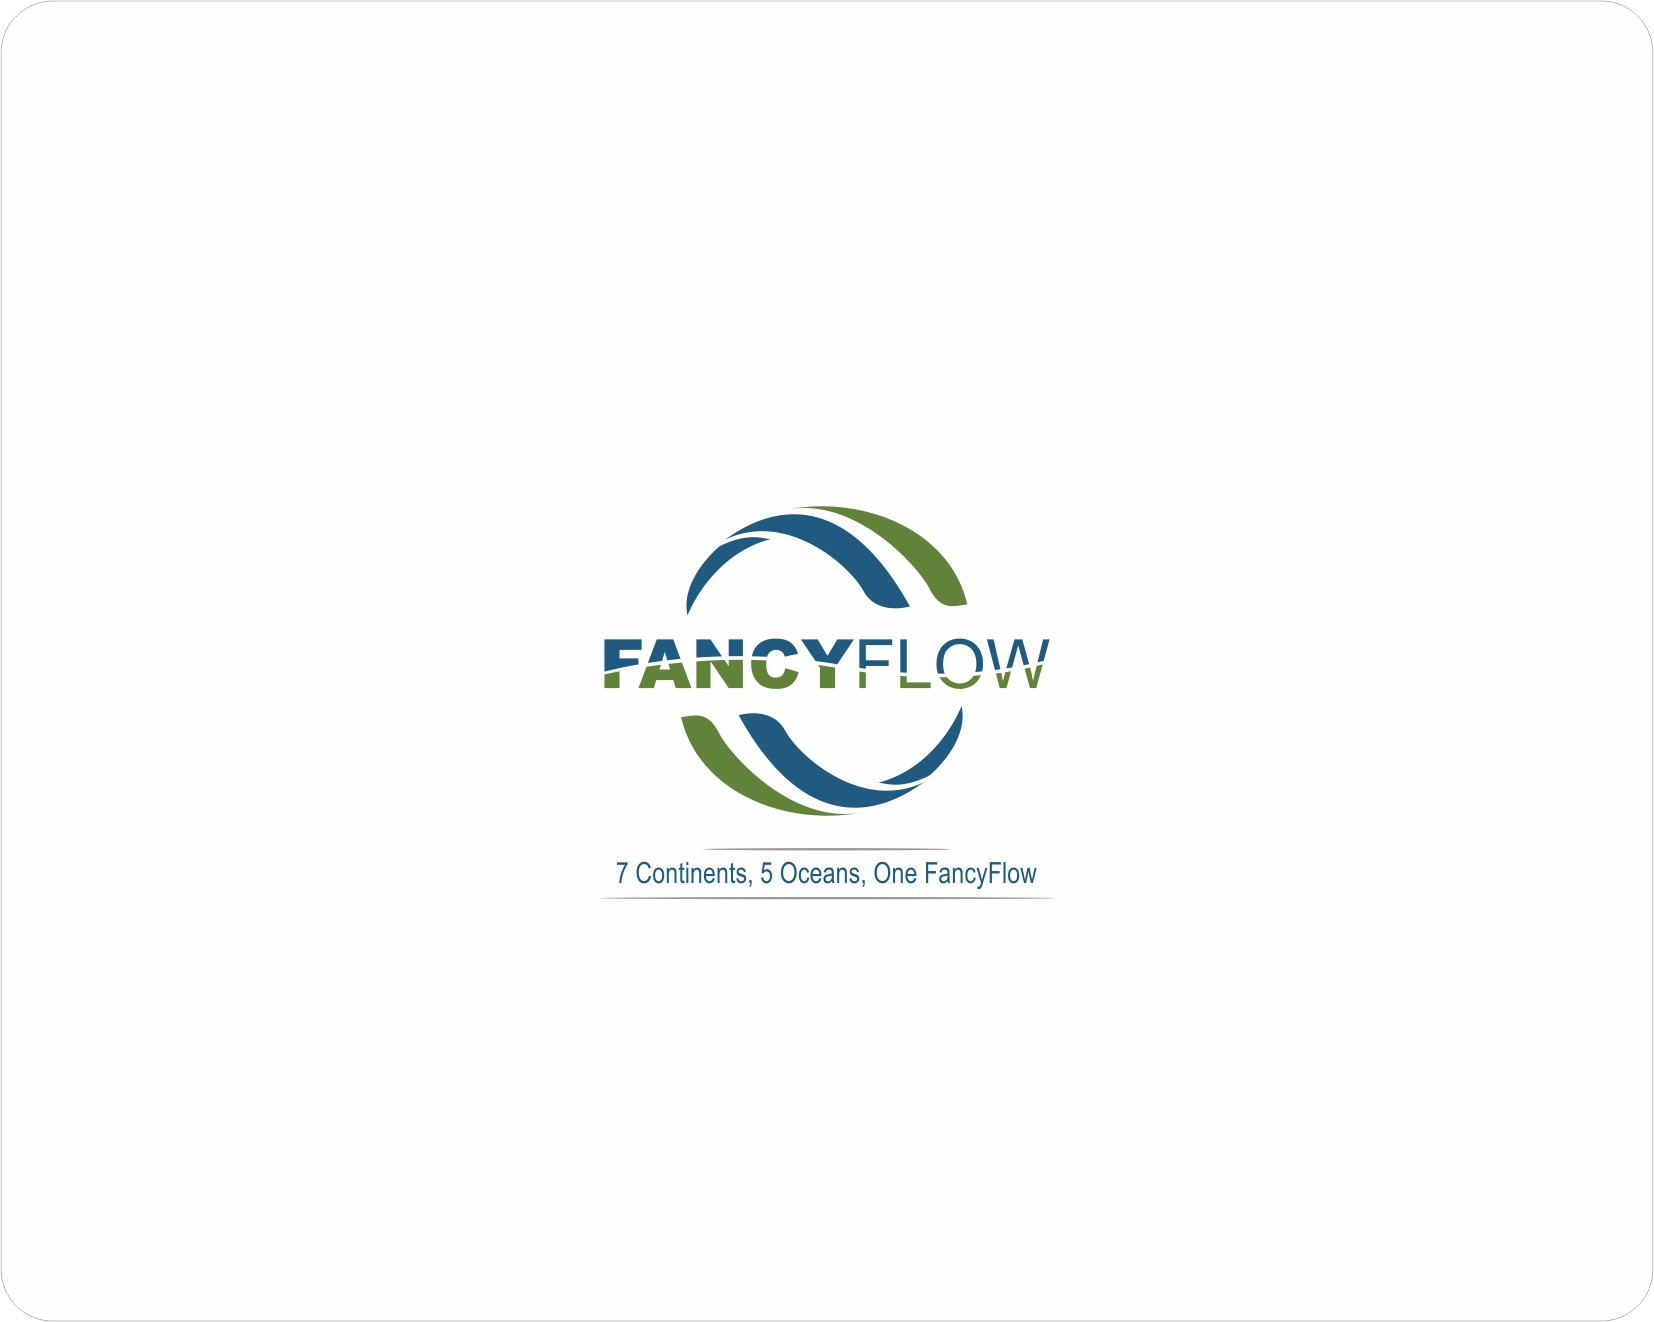 FancyFlow needs a fancy, simple image for a global market